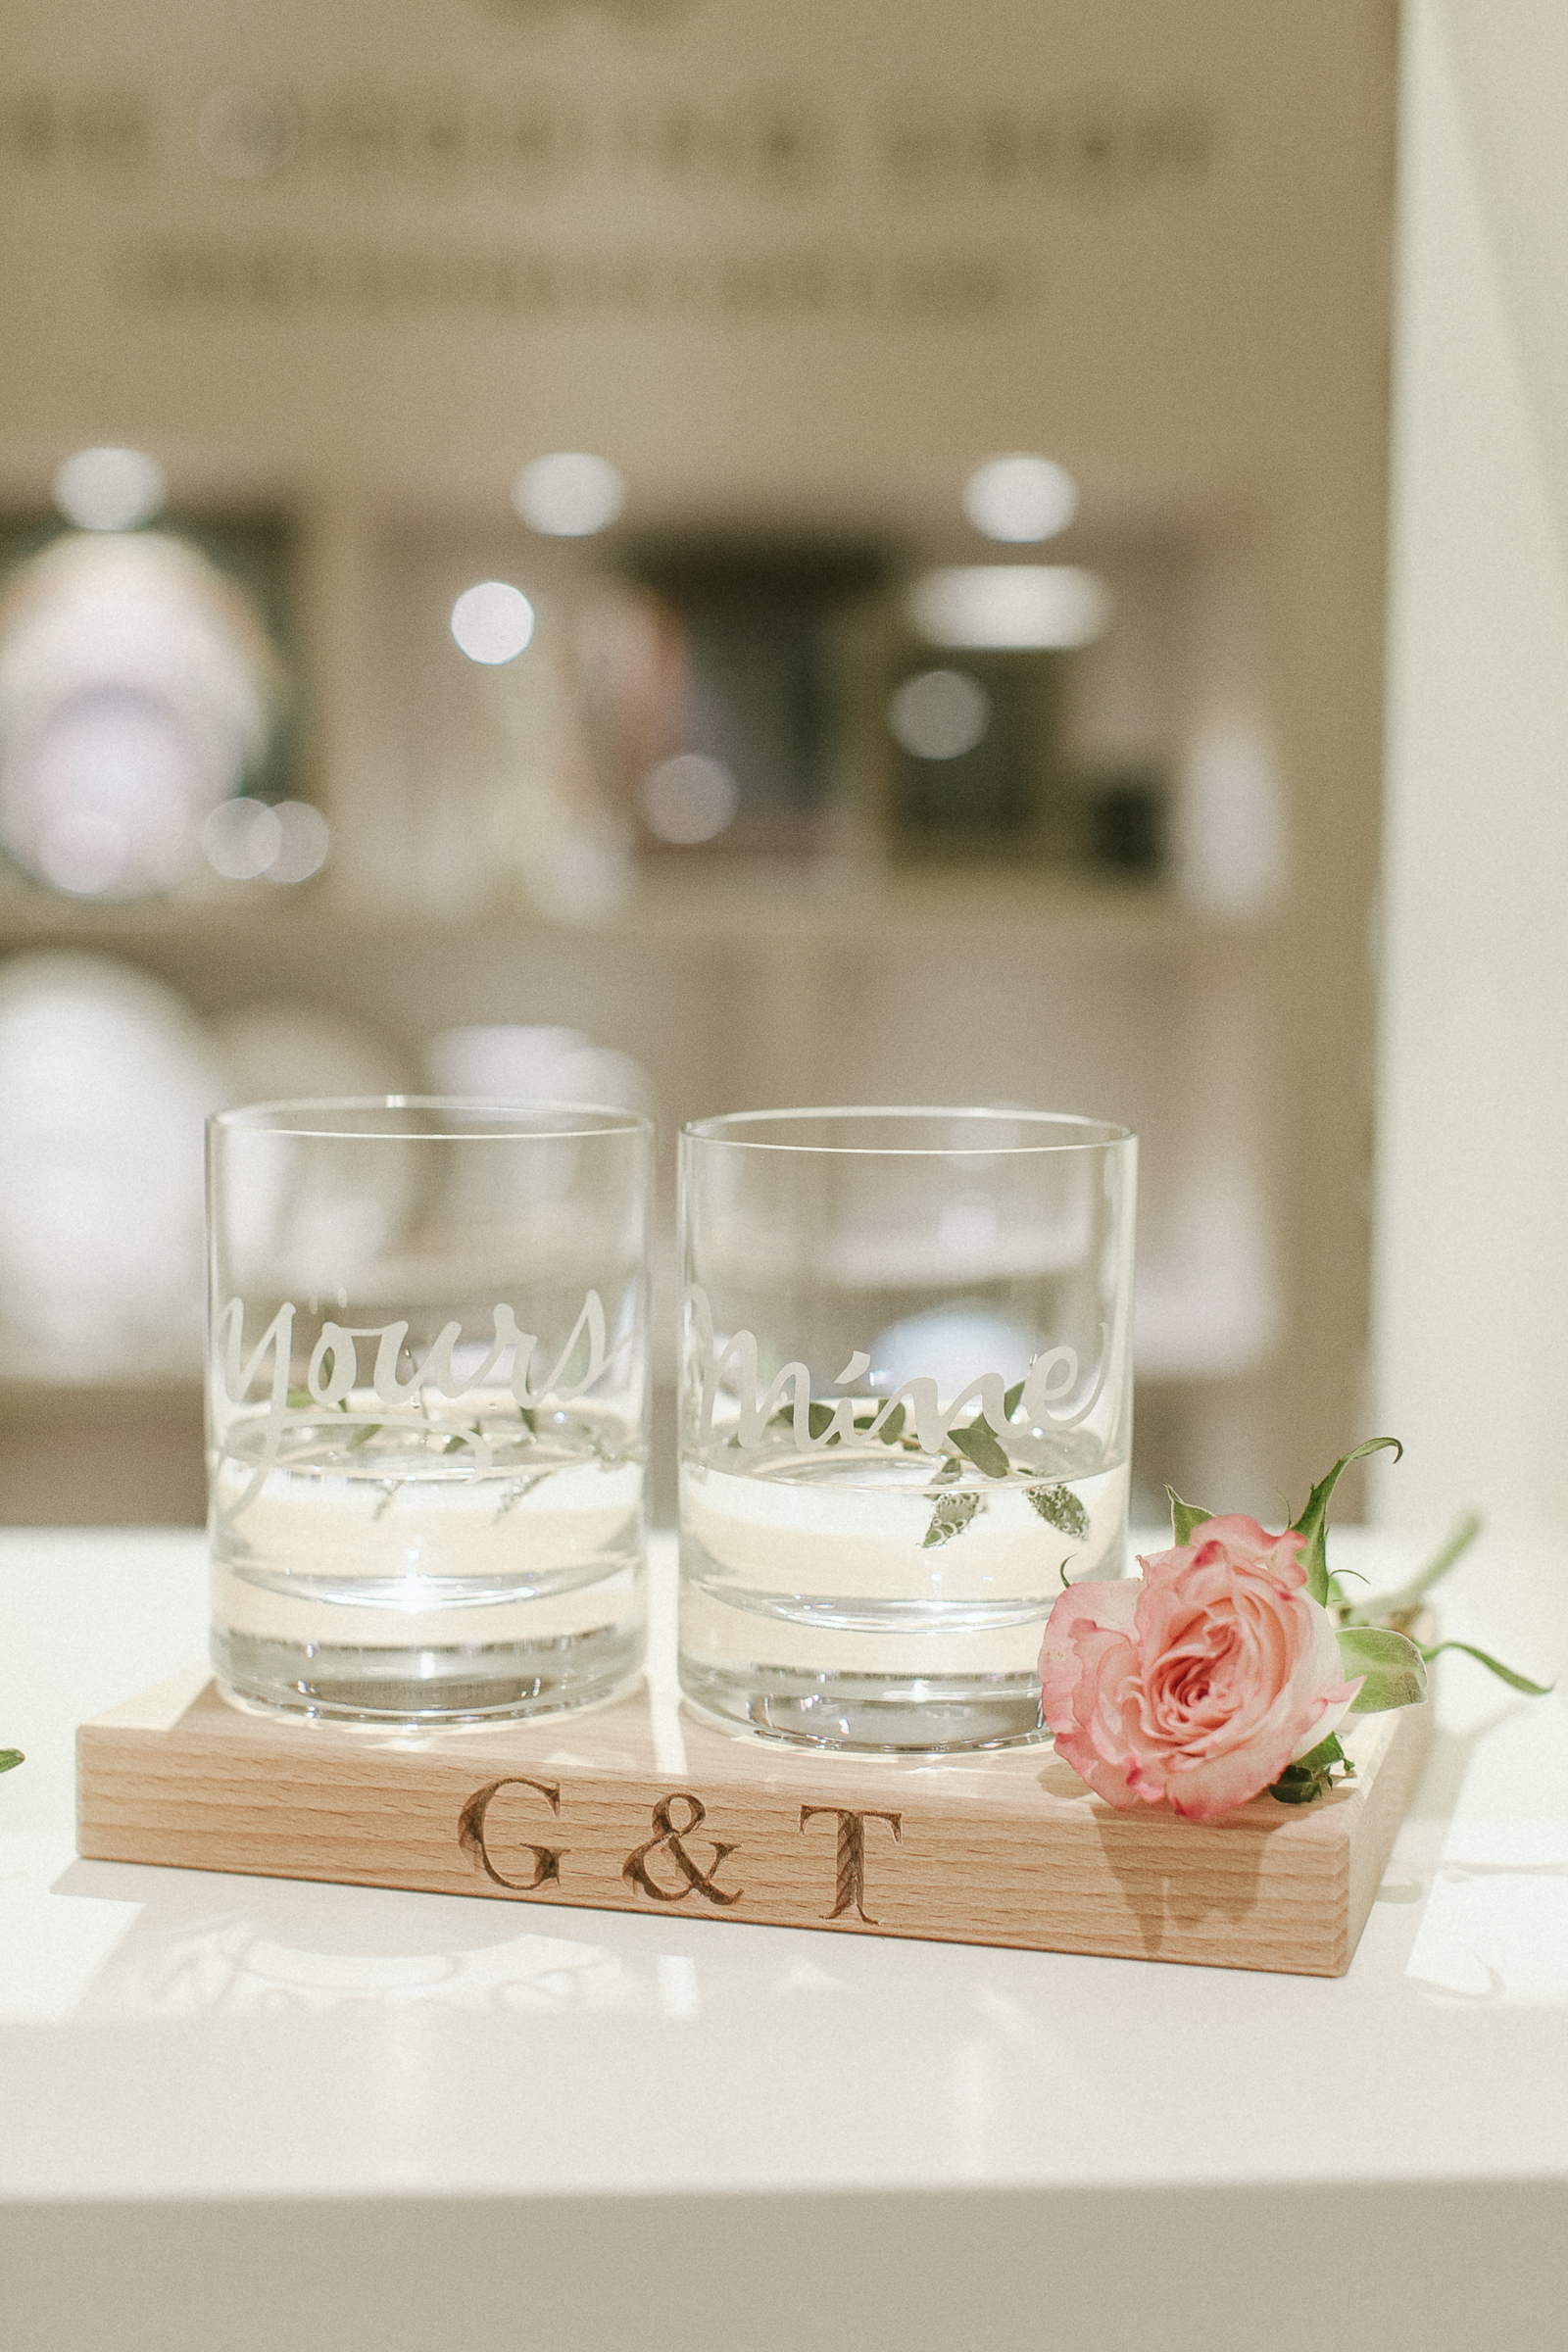 Wedding Gift List Service From The Wedding Shop The Wedding Shop at ...